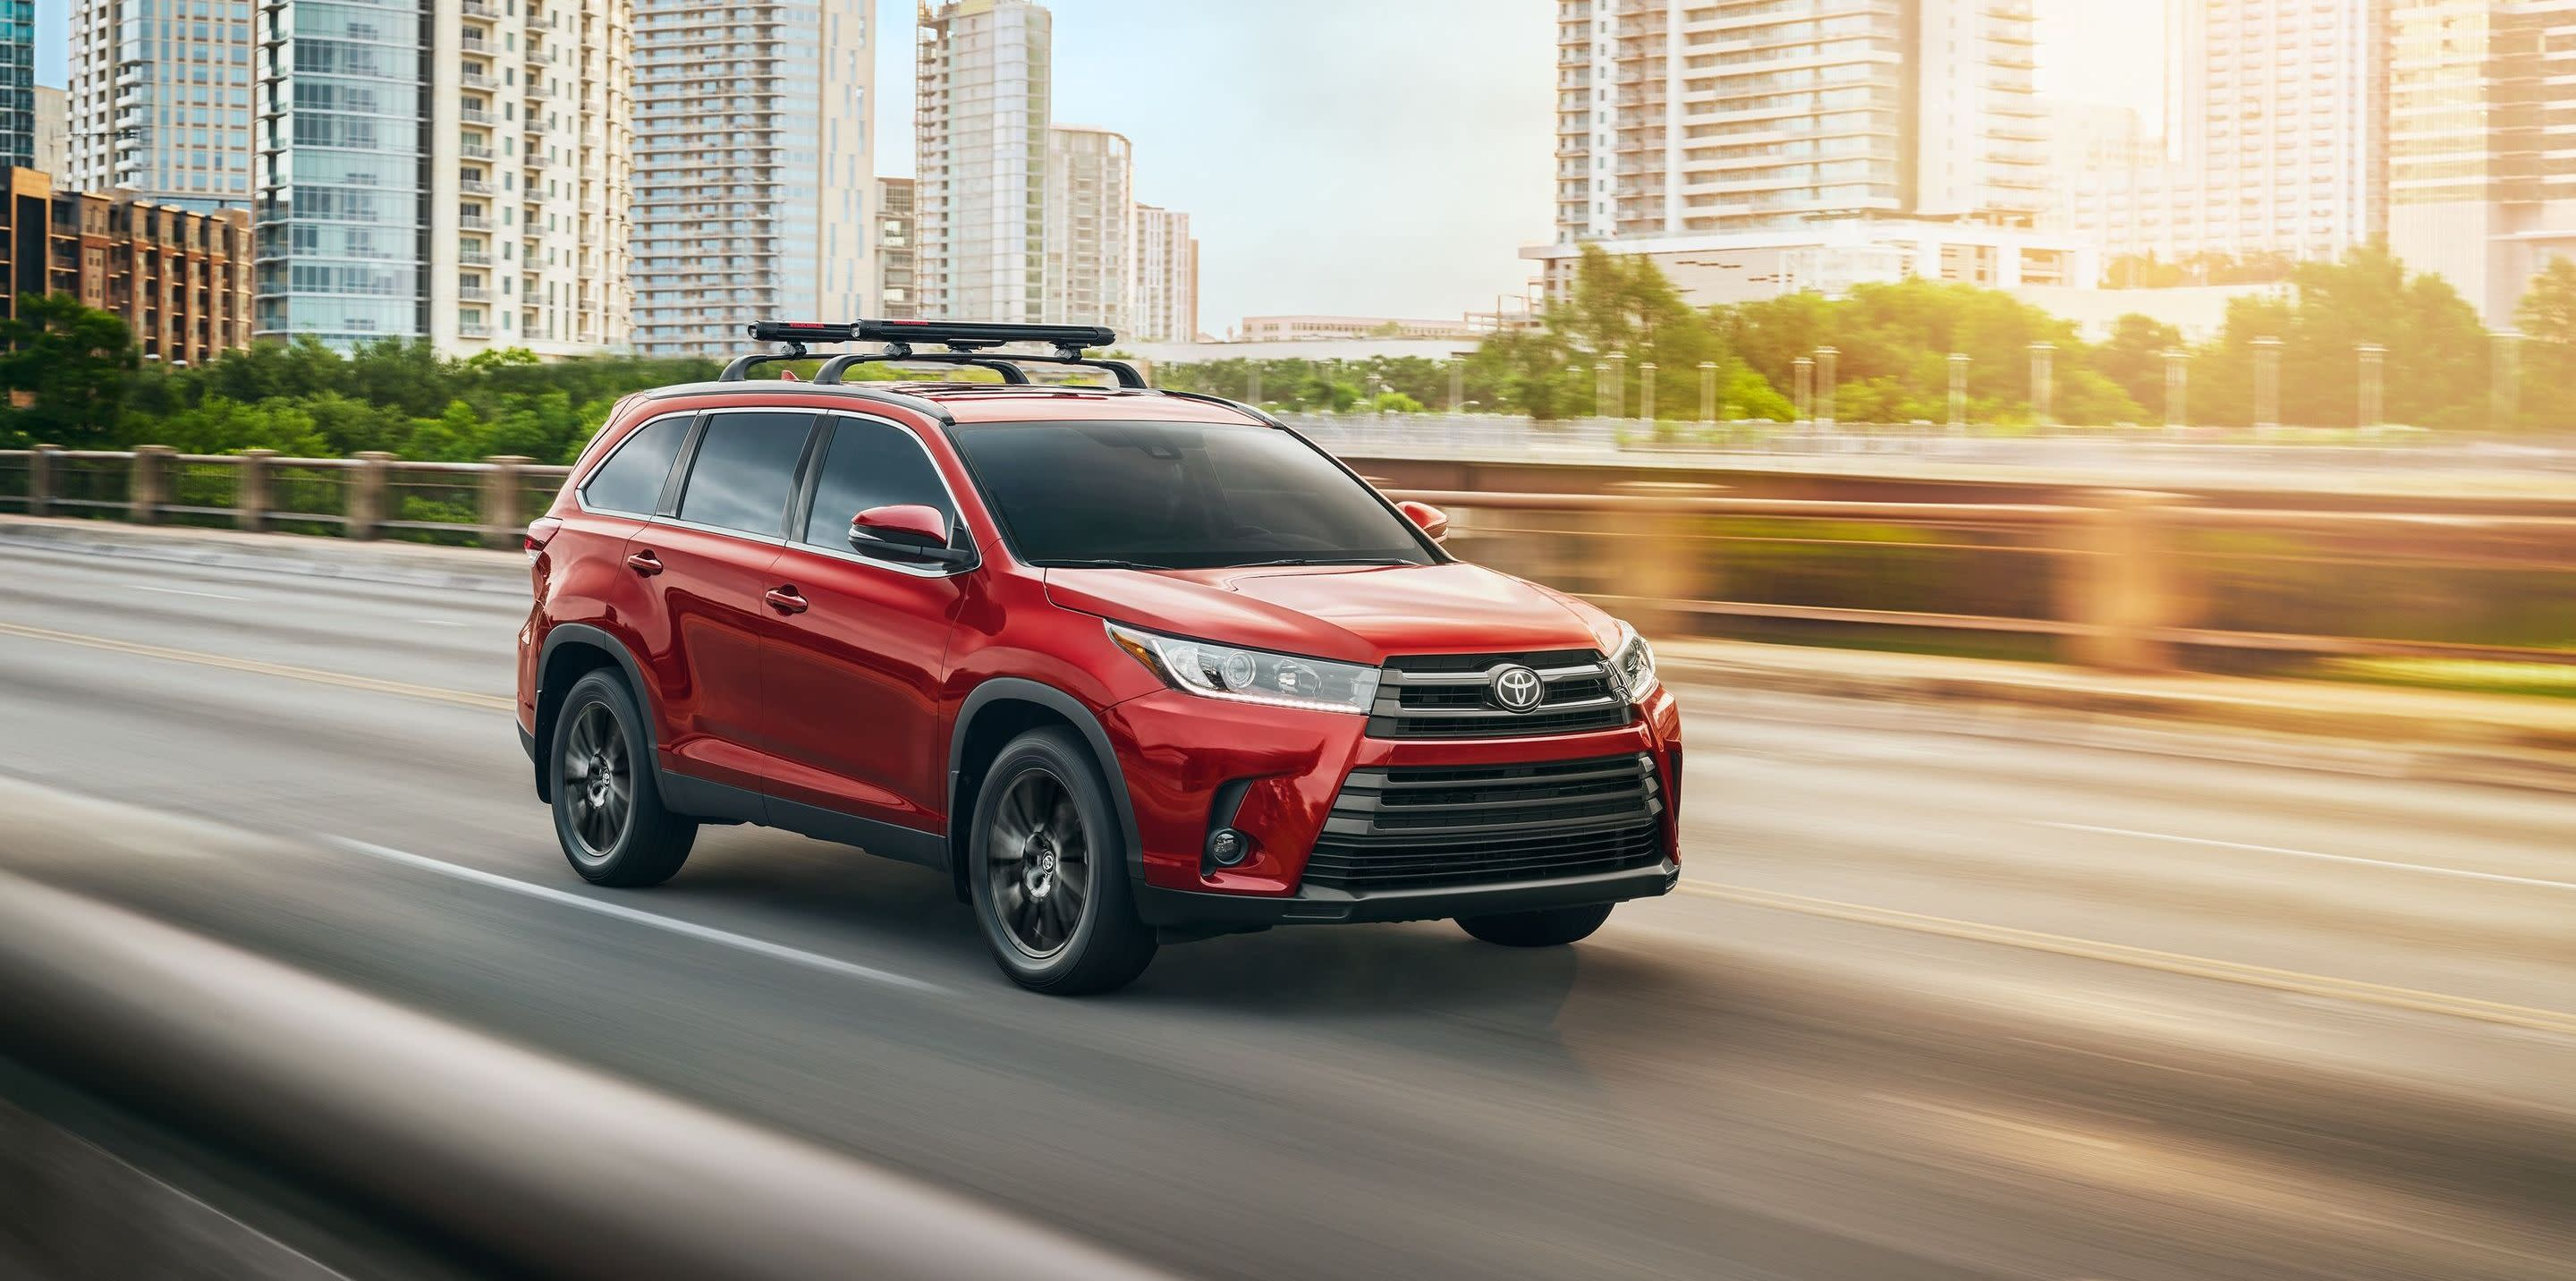 2019 Toyota Highlander vs 2019 Nissan Pathfinder in New Castle, DE